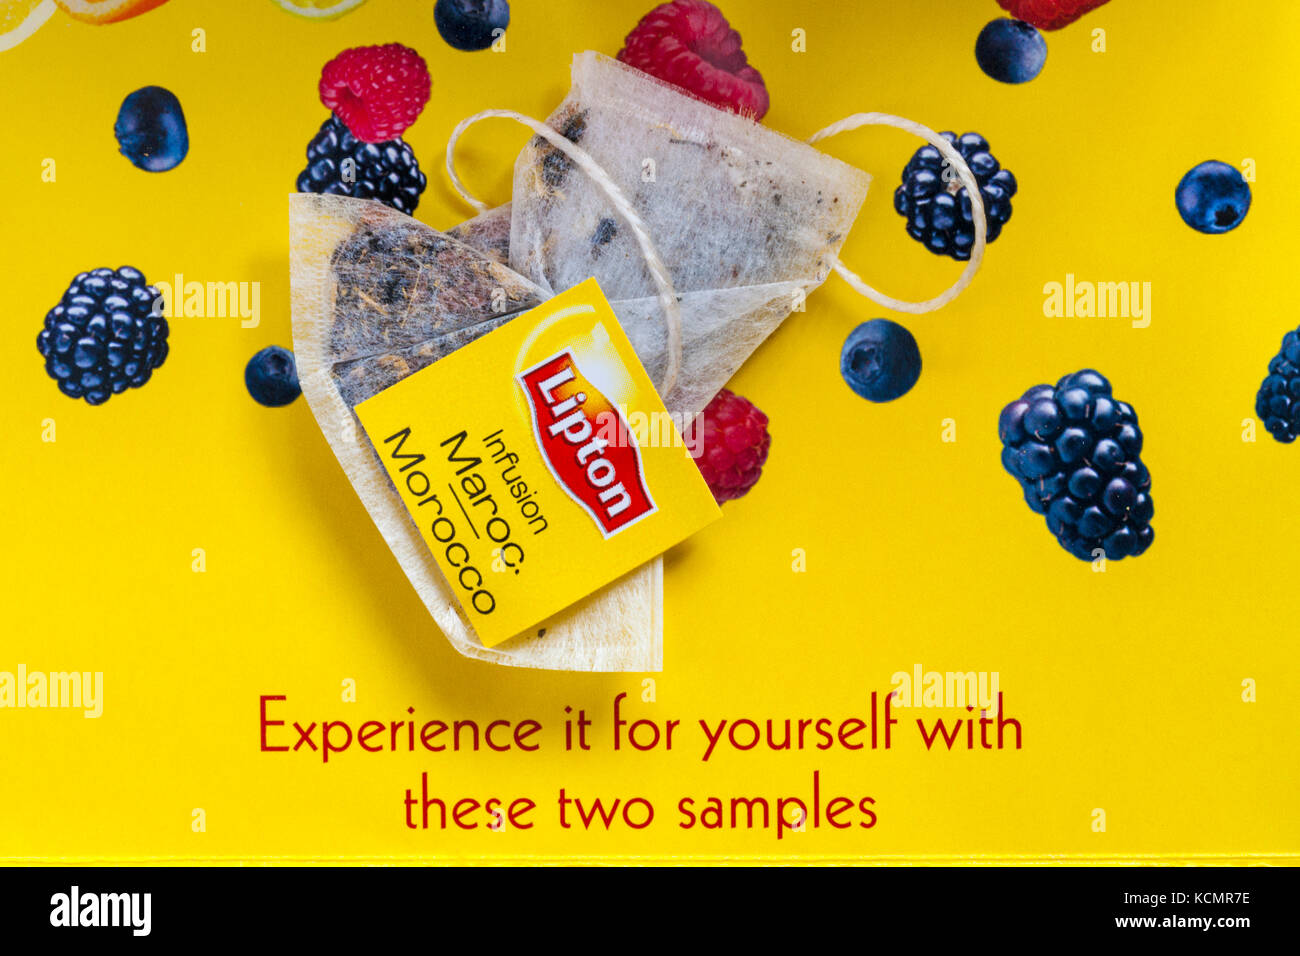 Lipton tea stock photos & lipton tea stock images alamy.